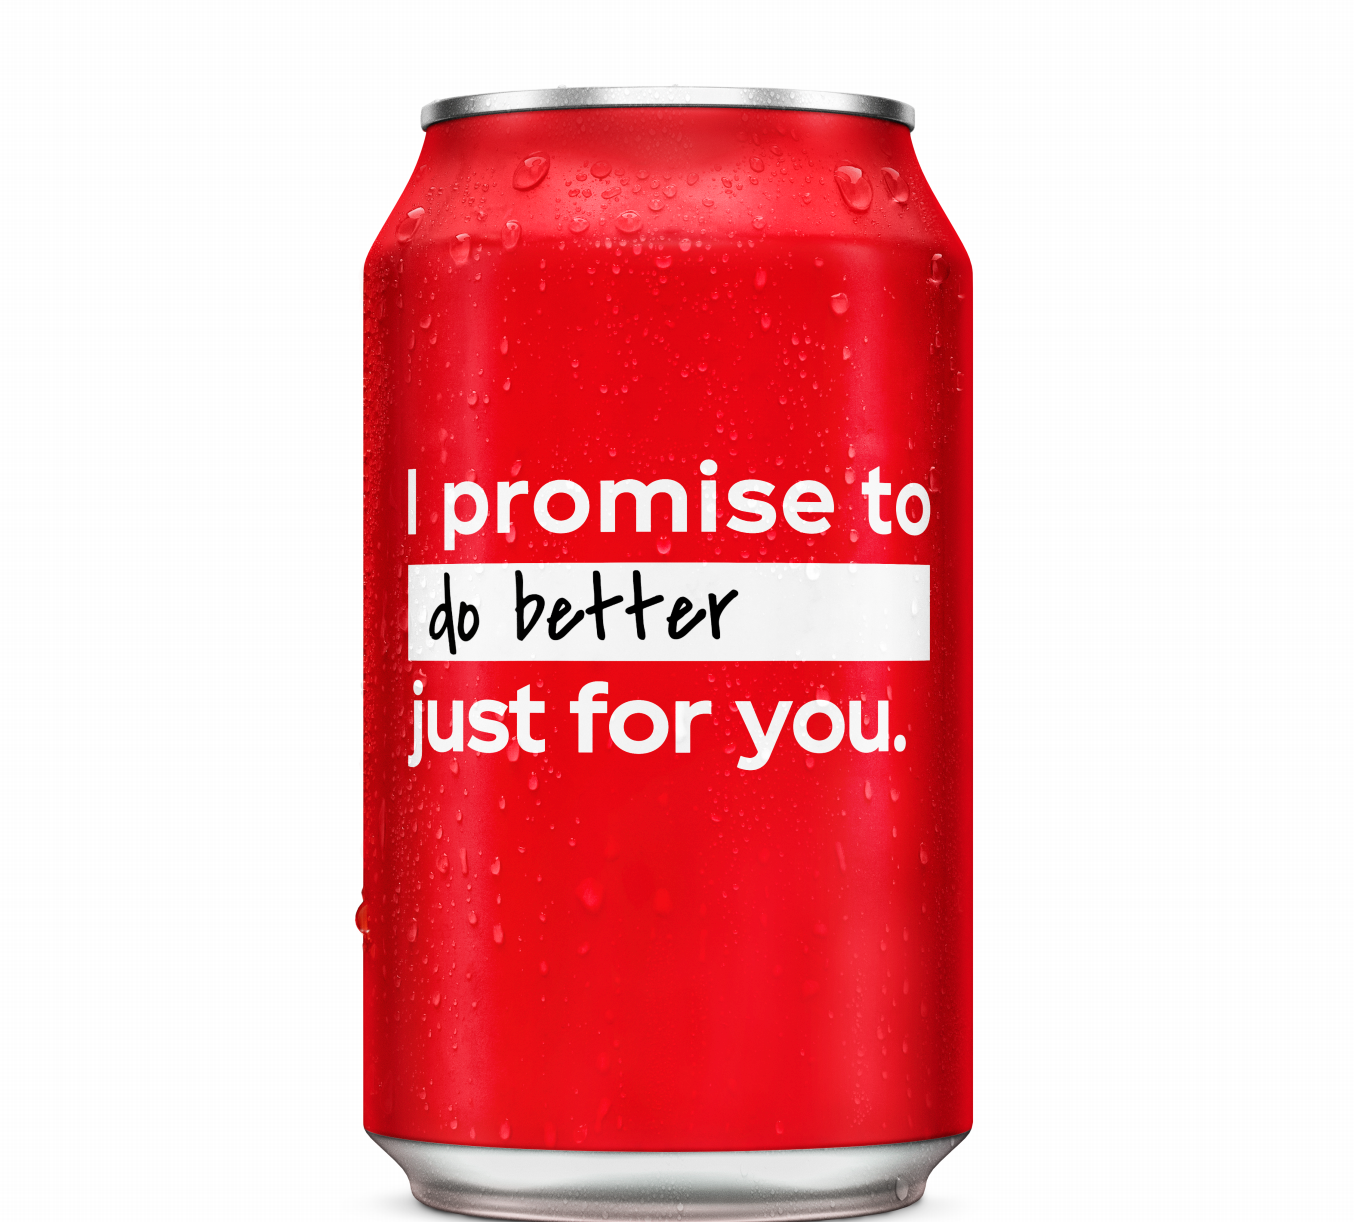 Coke can with the 'Do Better' resolution written on it.